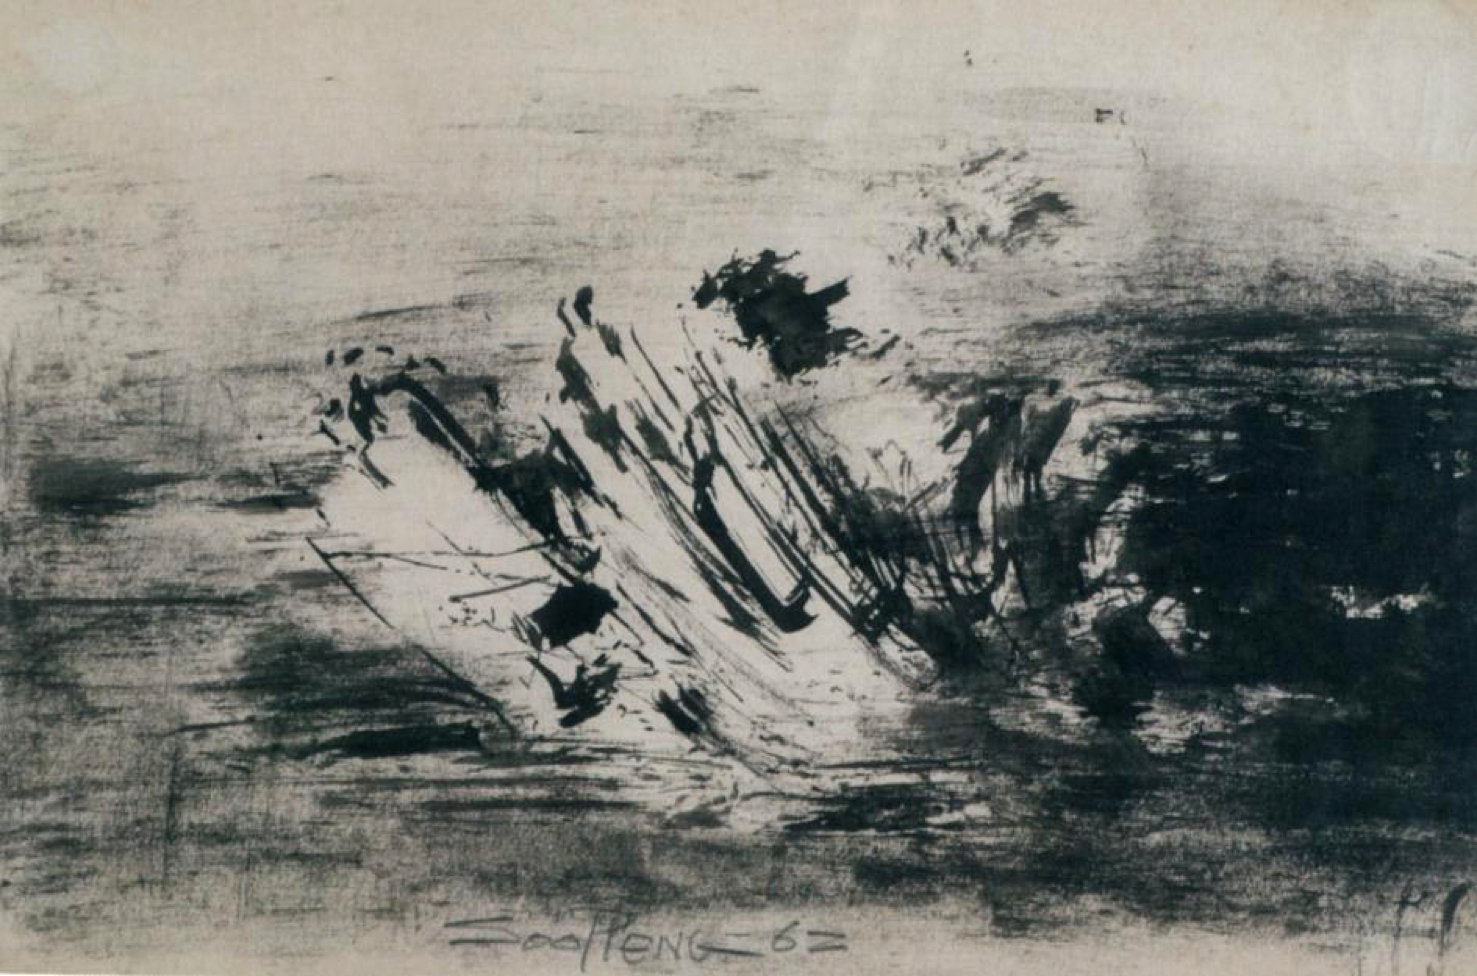 Cheong Soo Pieng, Abstract Composition IV, ink on paper, 15 x 22.5 cm, 1962